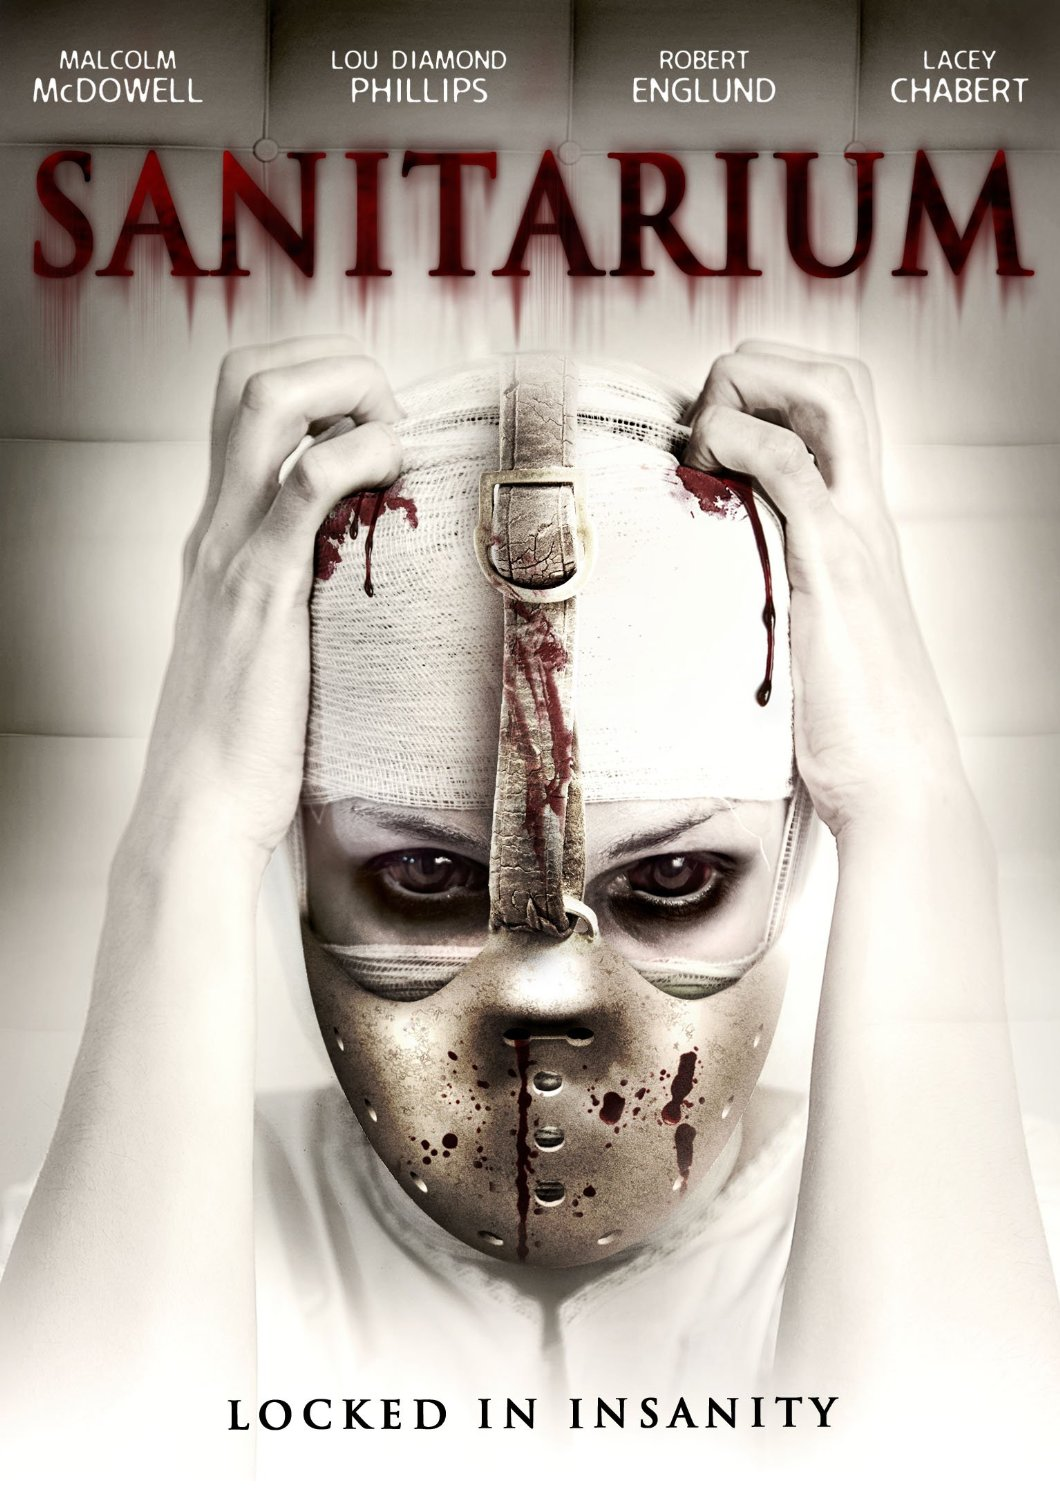 Check Into Sanitarium with the Horror Thrillers DVD Check Into Sanitarium with the Horror Thrillers DVD Release